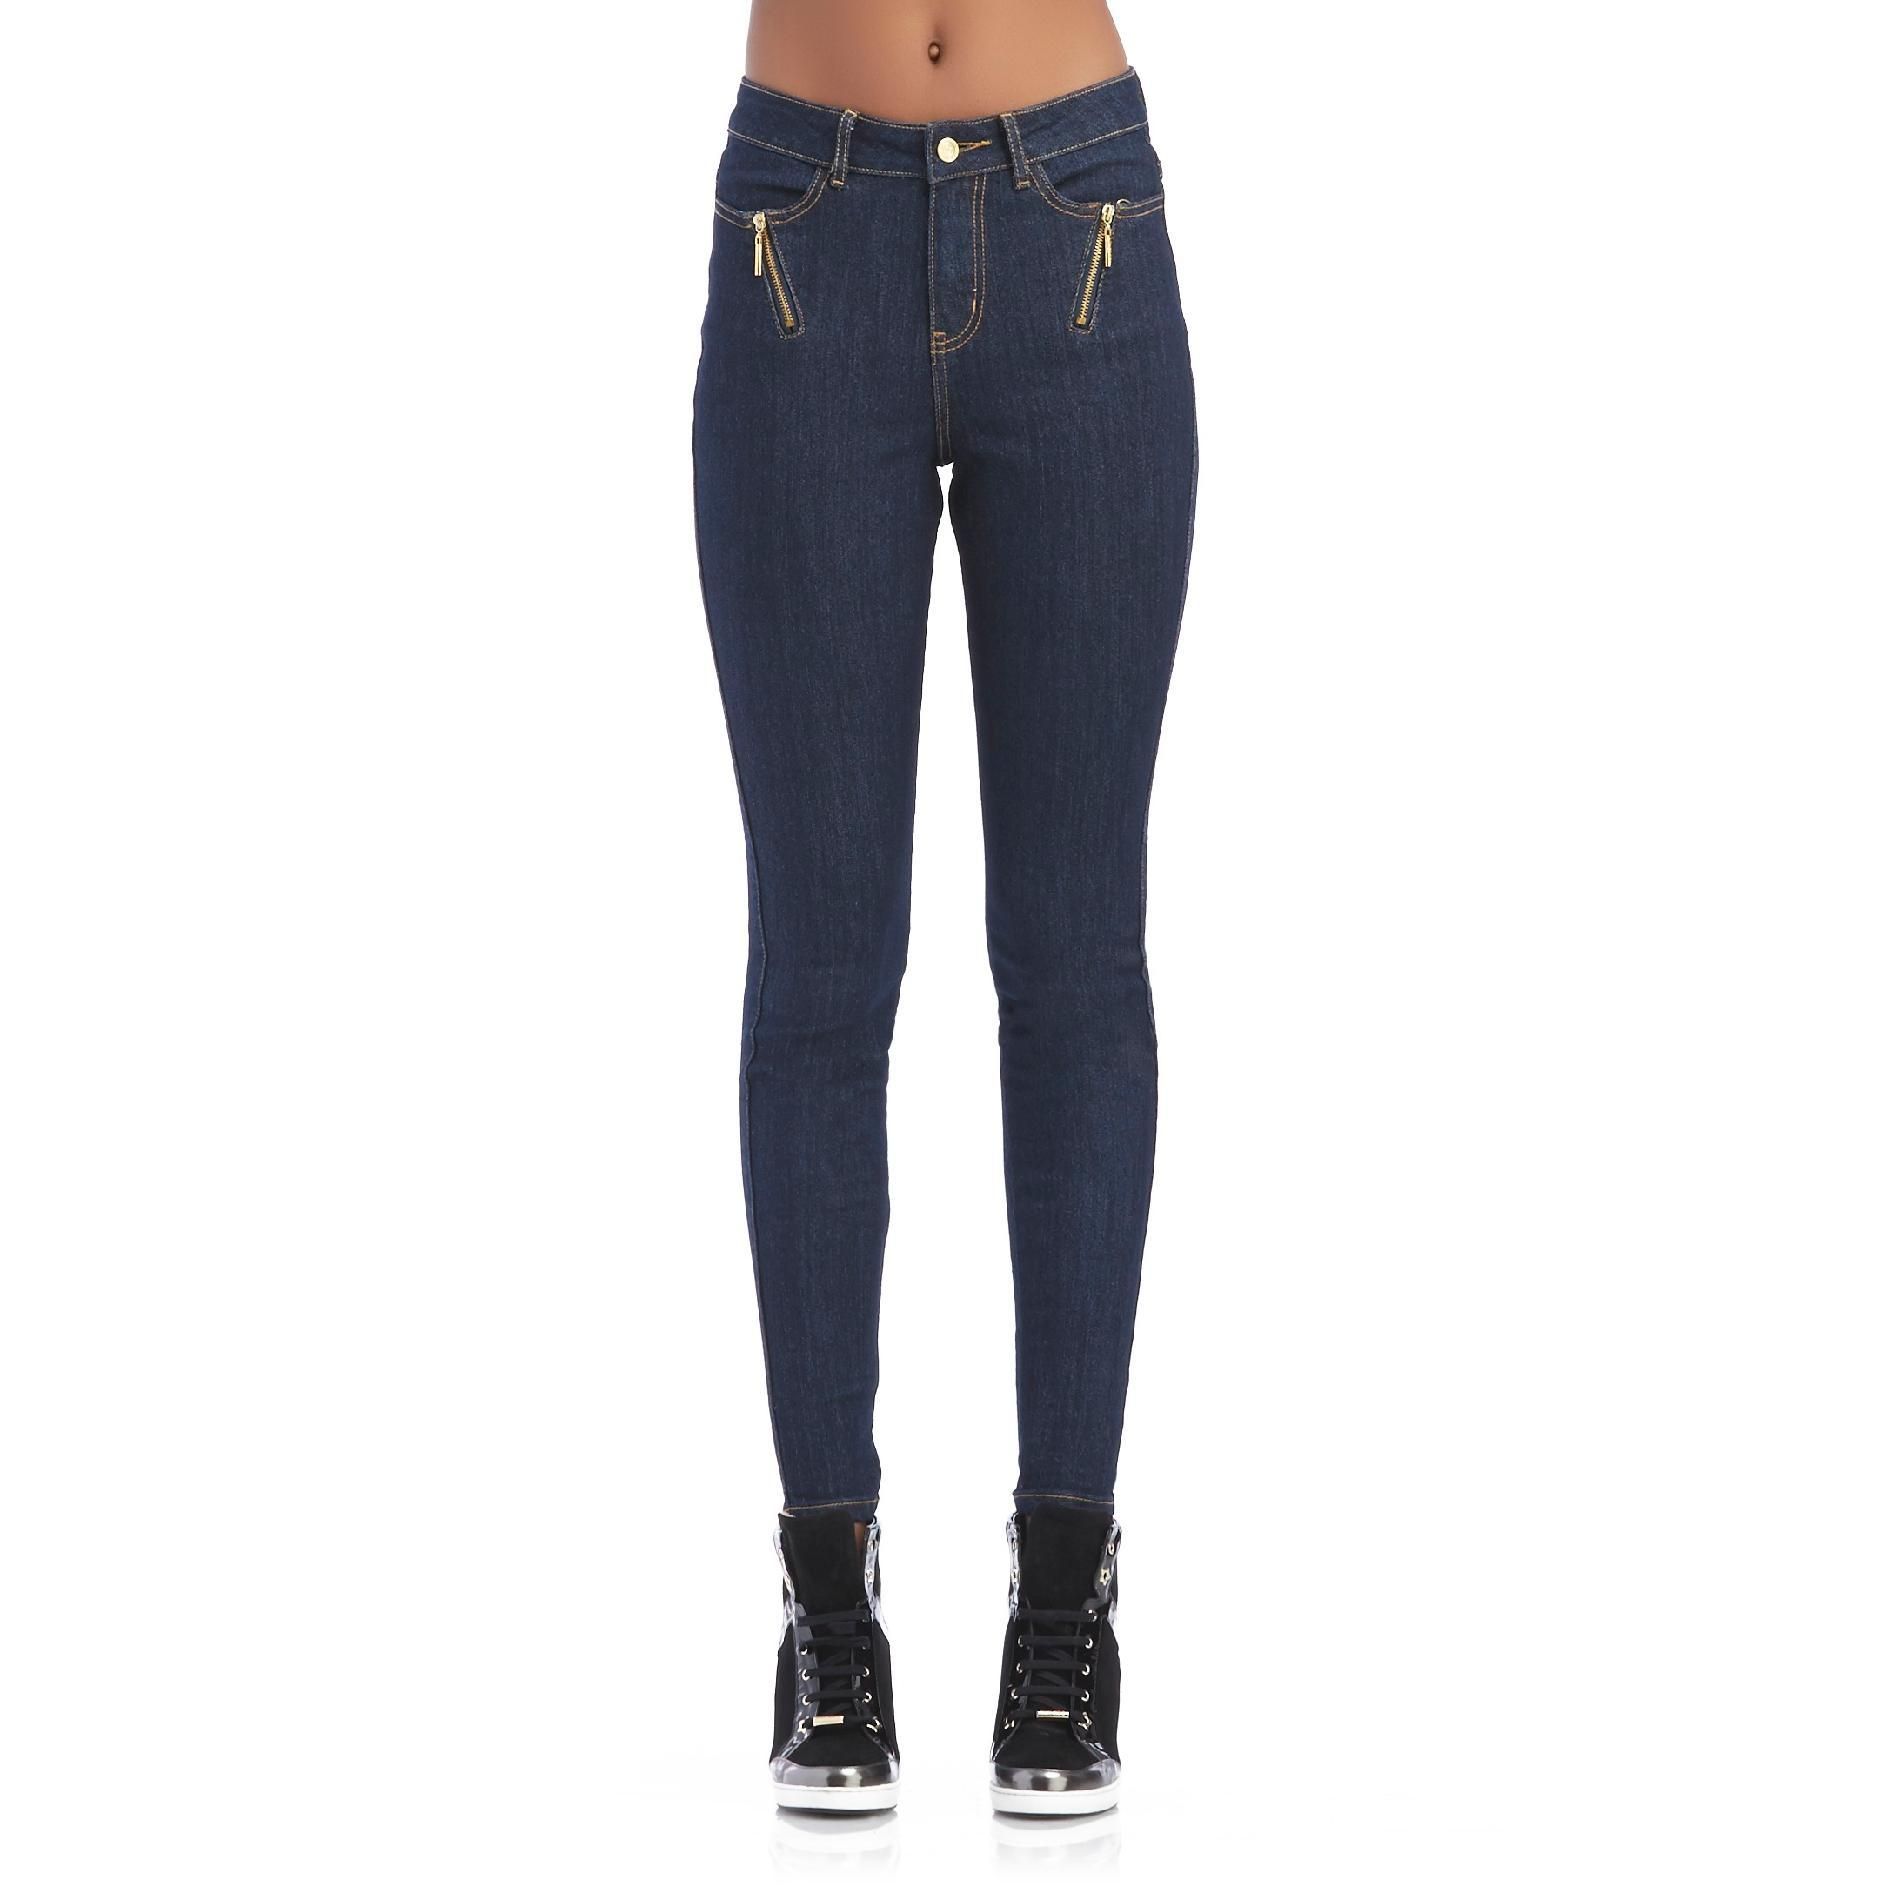 Nicki Minaj Women's High-Rise Skinny Jeans